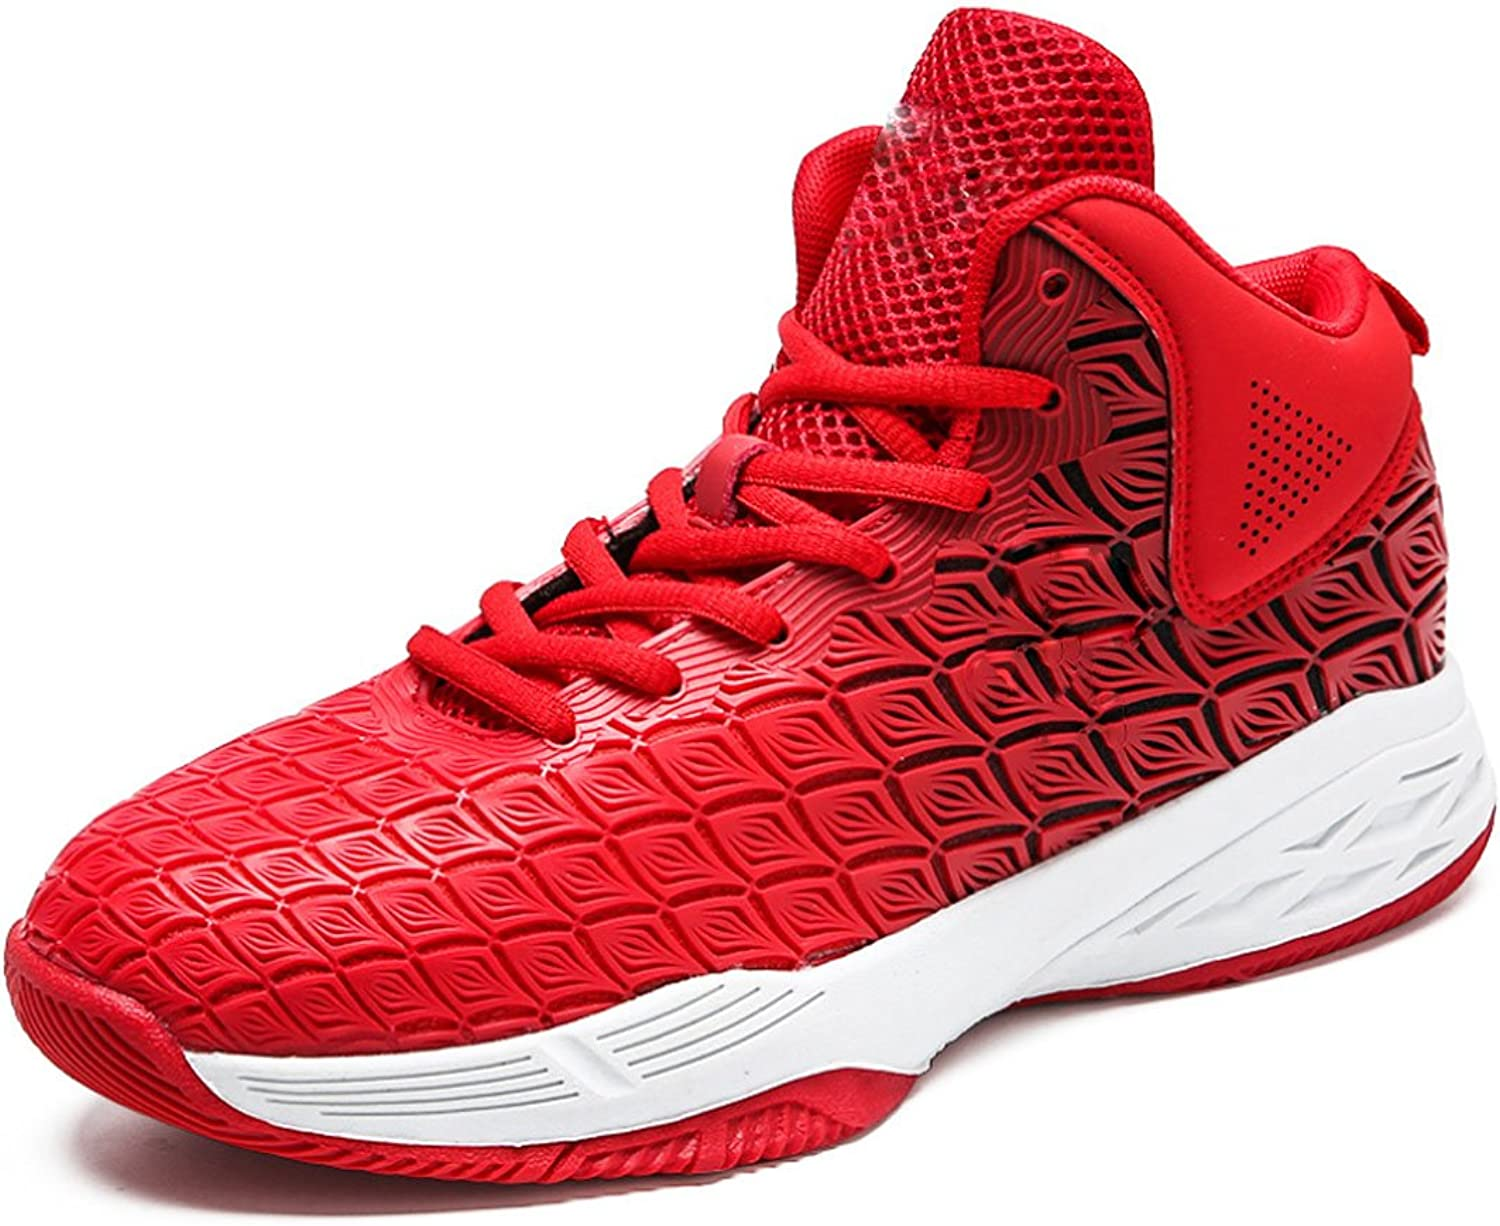 QQBL Men's Red Sports Basketball shoes Mesh Wear-Resistant Anti-Skid Impact-Resistant Quick-Drying Shock Absorption